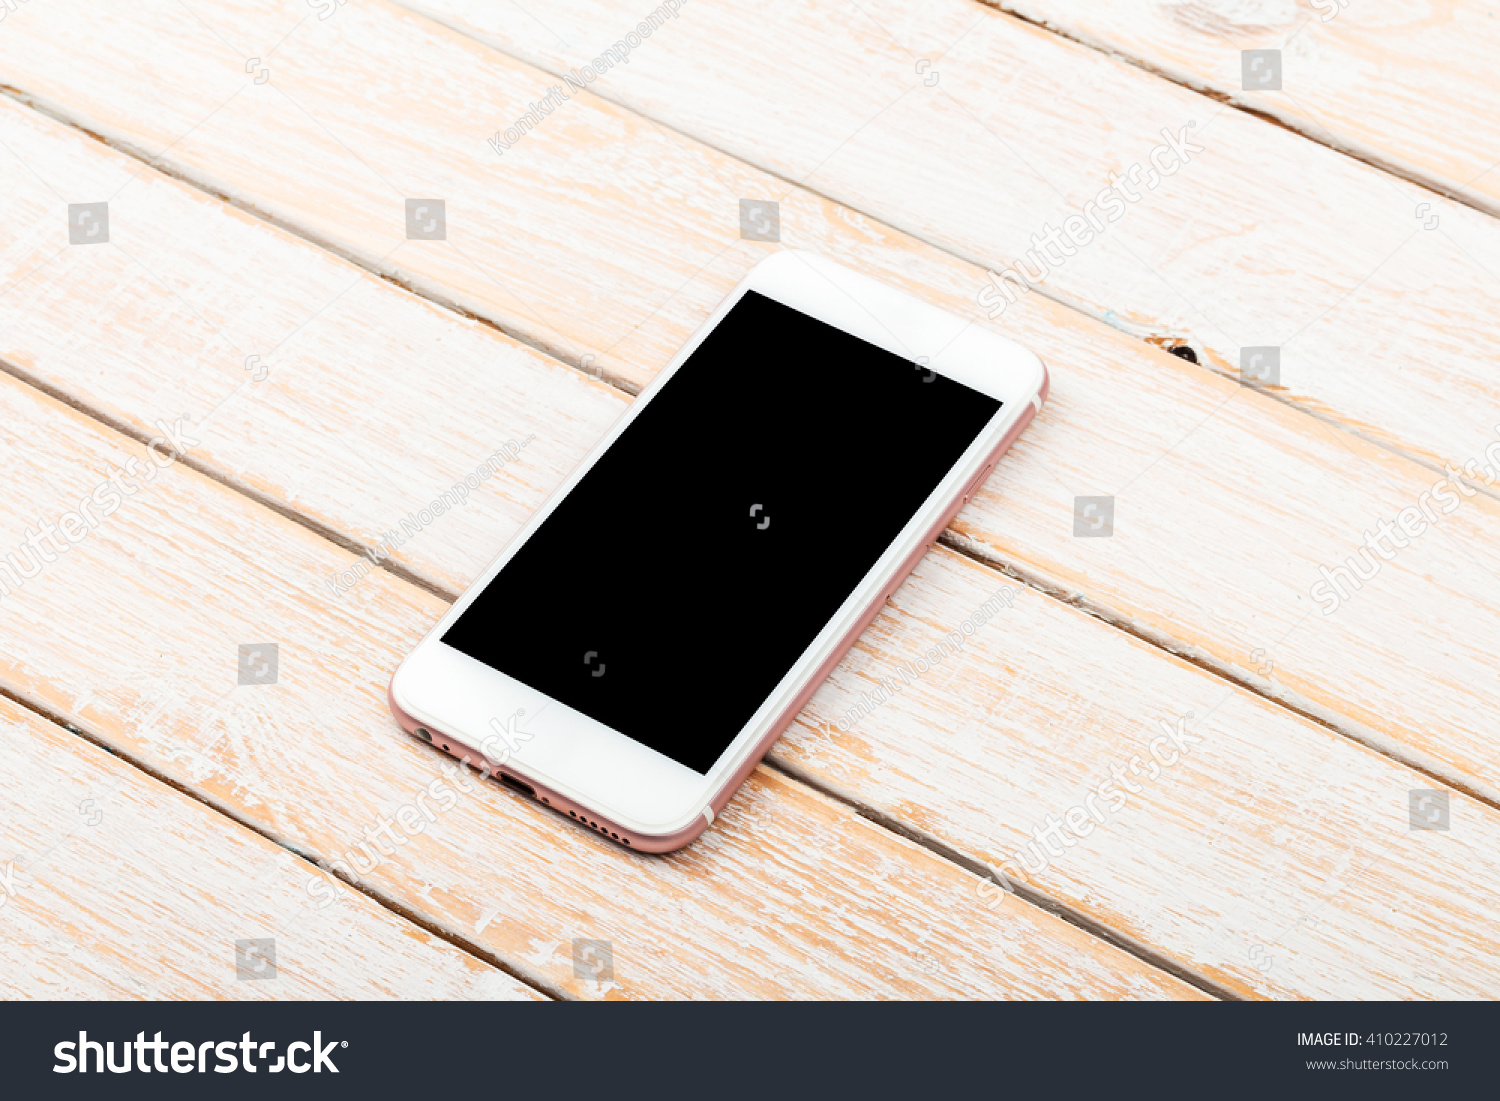 Mobile Phone On Wooden Table Background Clipping Path Inside Ez